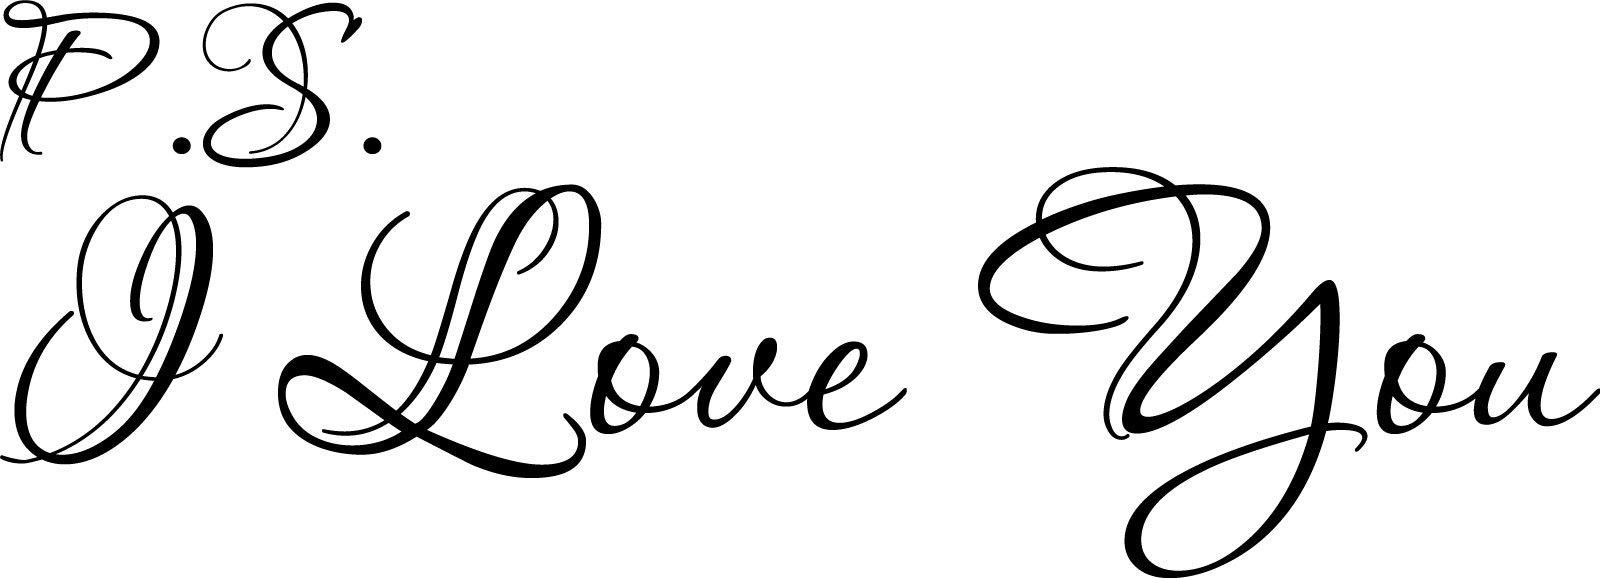 P.S. I Love You Cute Cursive Vinyl Wall Decal Quote ...